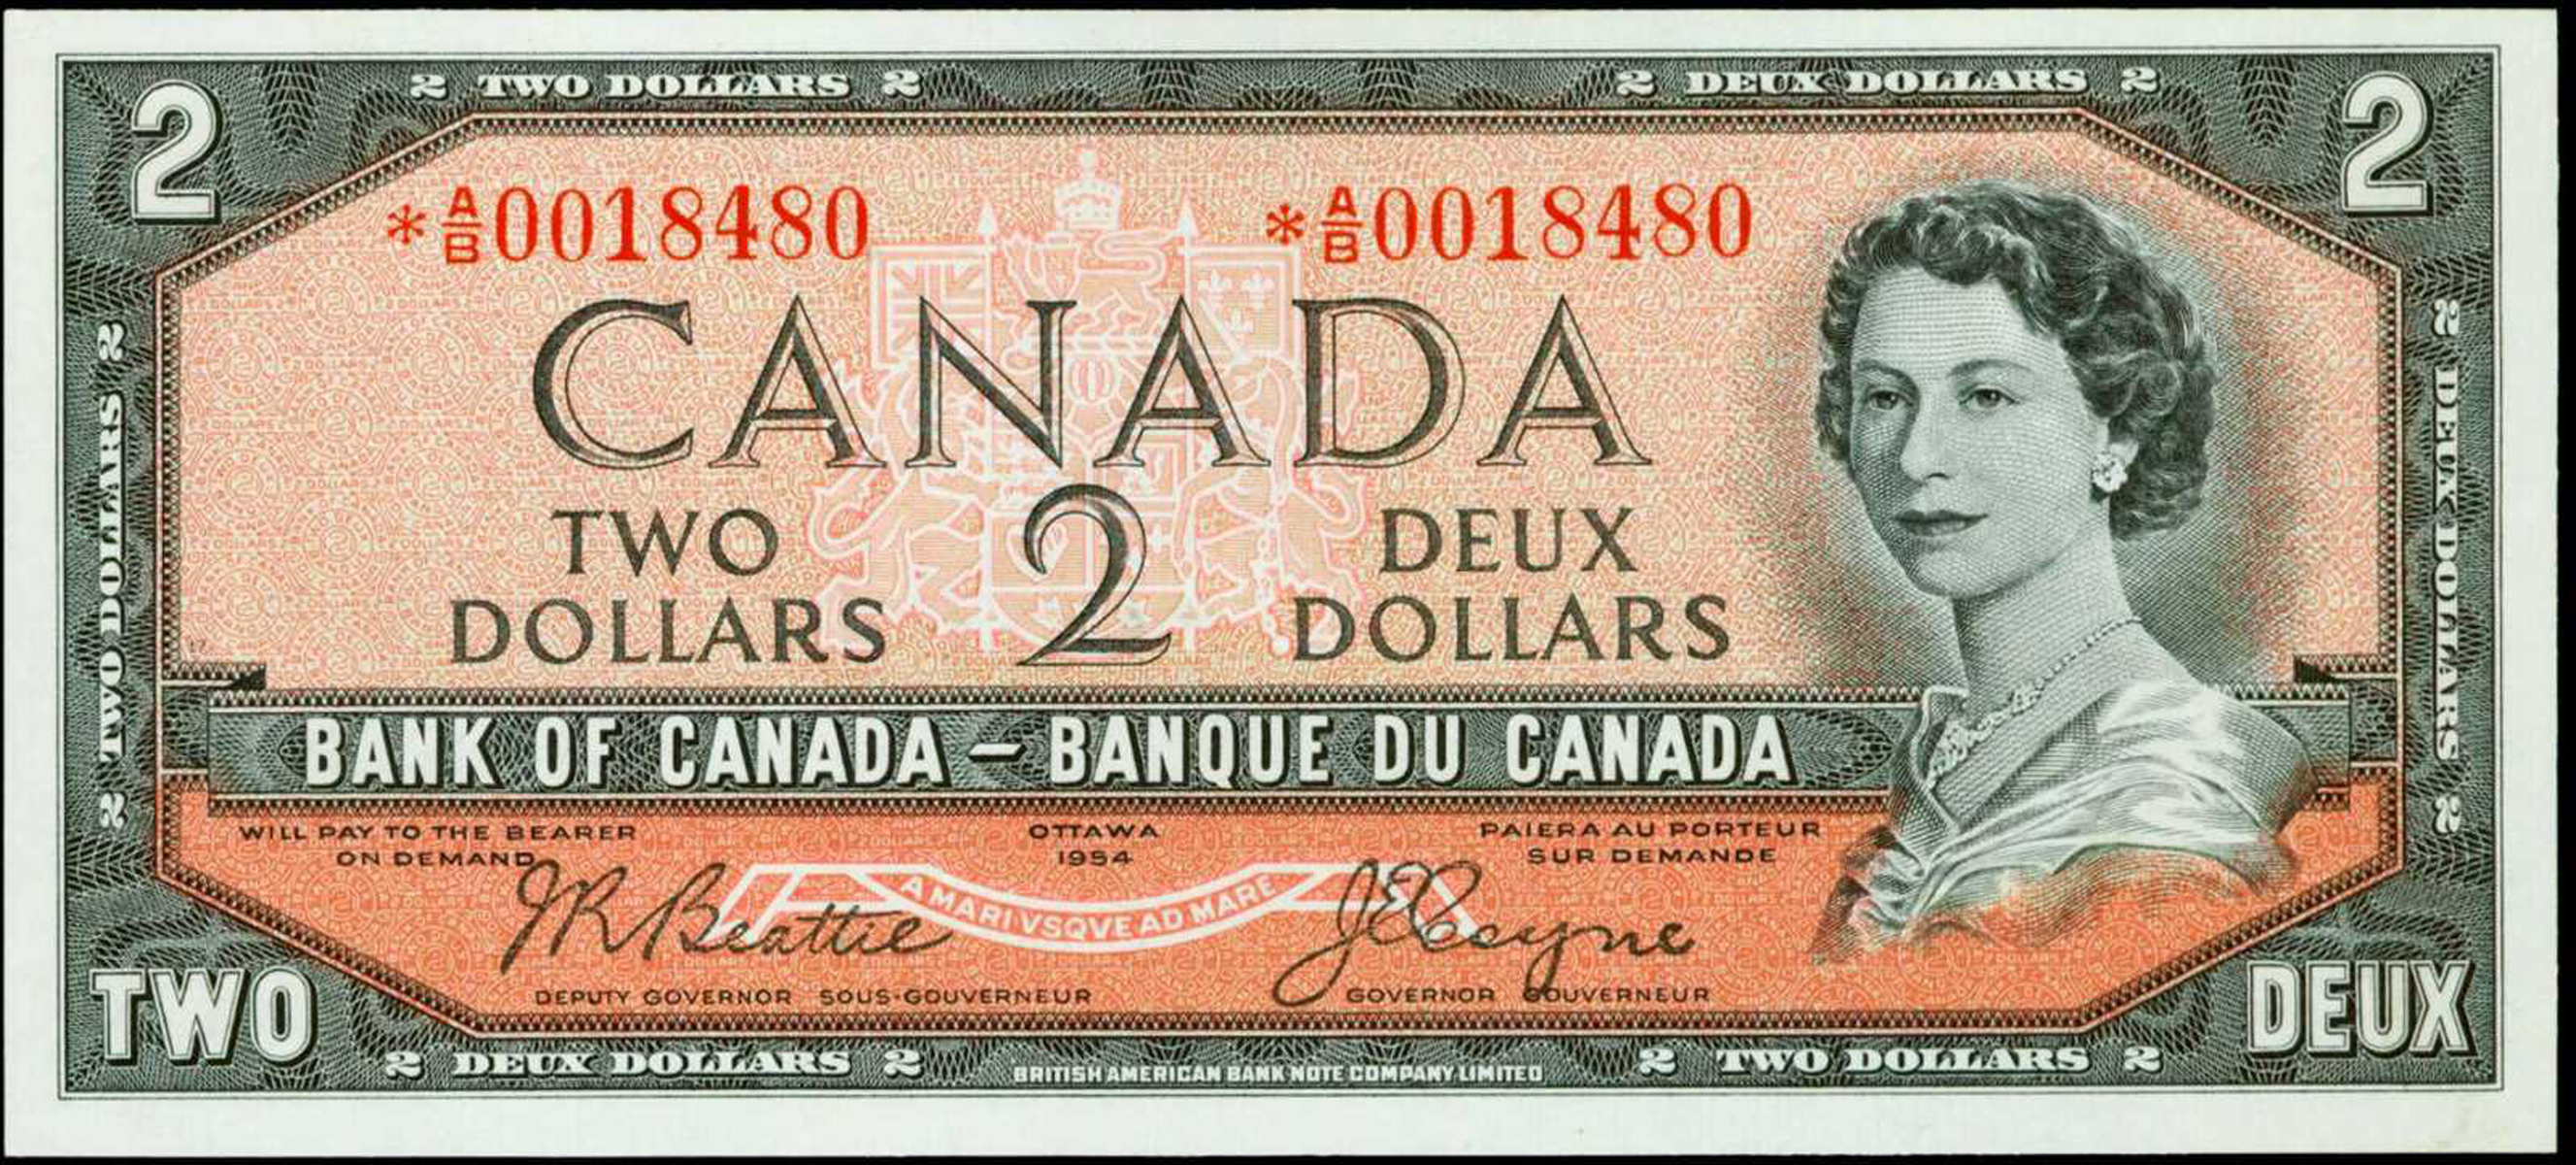 Value Of Devils Face 2 Bill From The Bank Of Canada